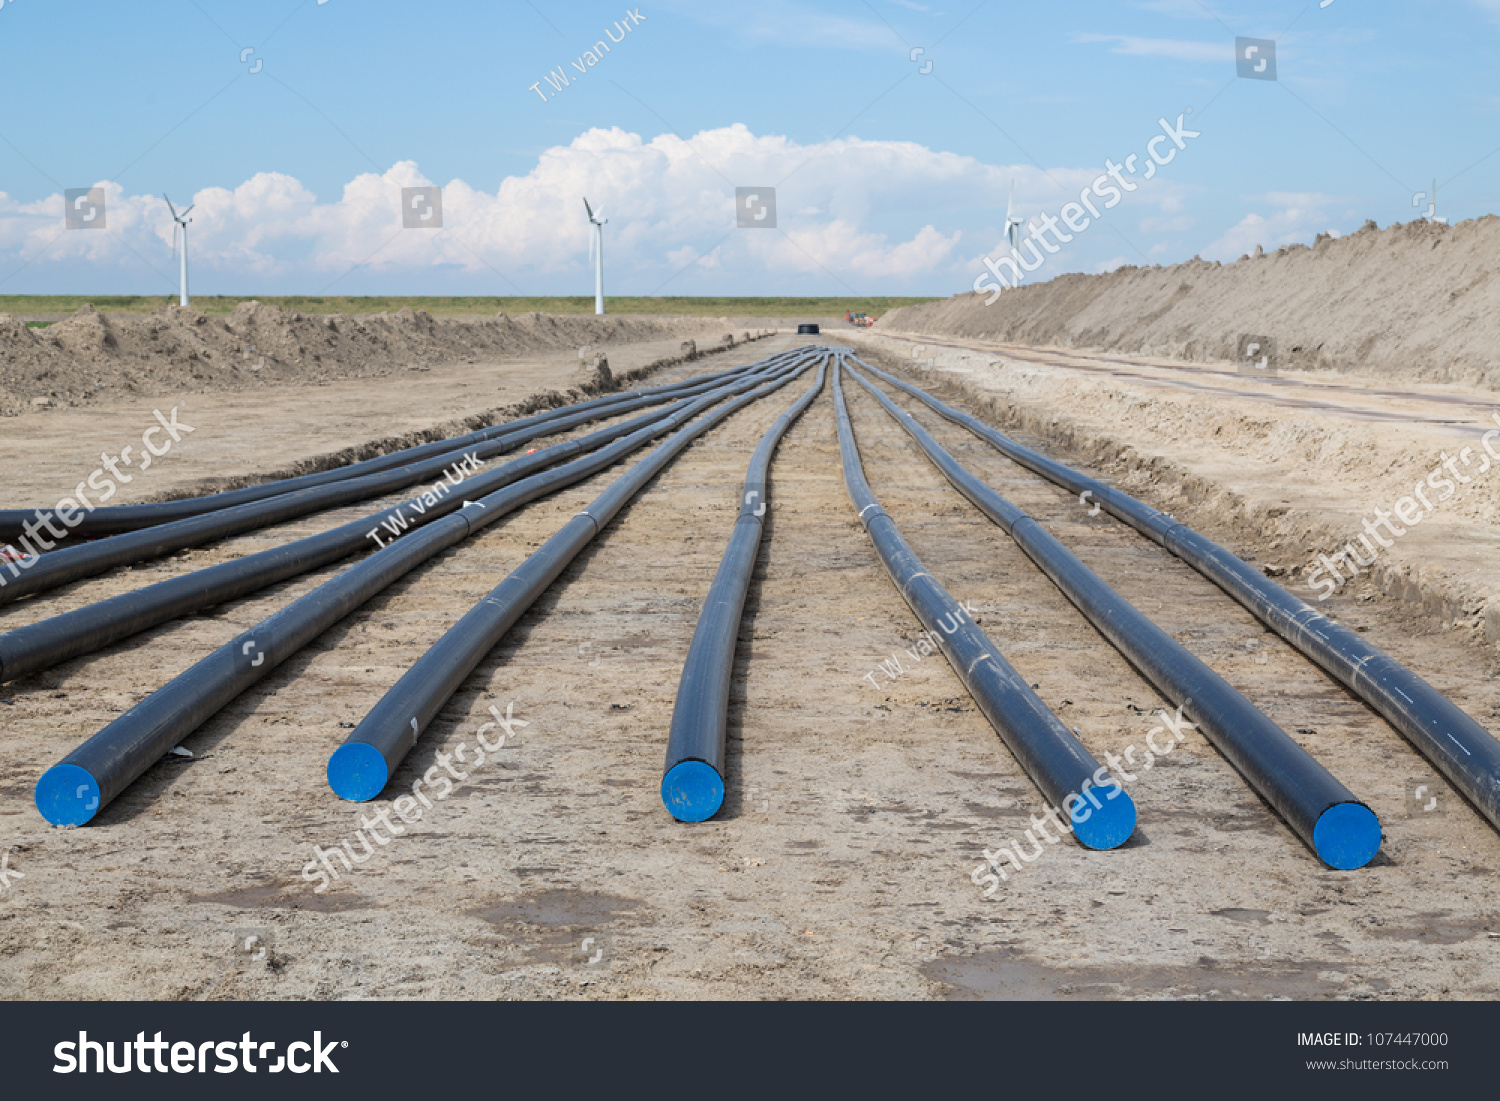 Digging Big Electricity Cable Trench Stock Photo Edit Now Agricultural Structures Of A For New Wind Farm In The Netherlands